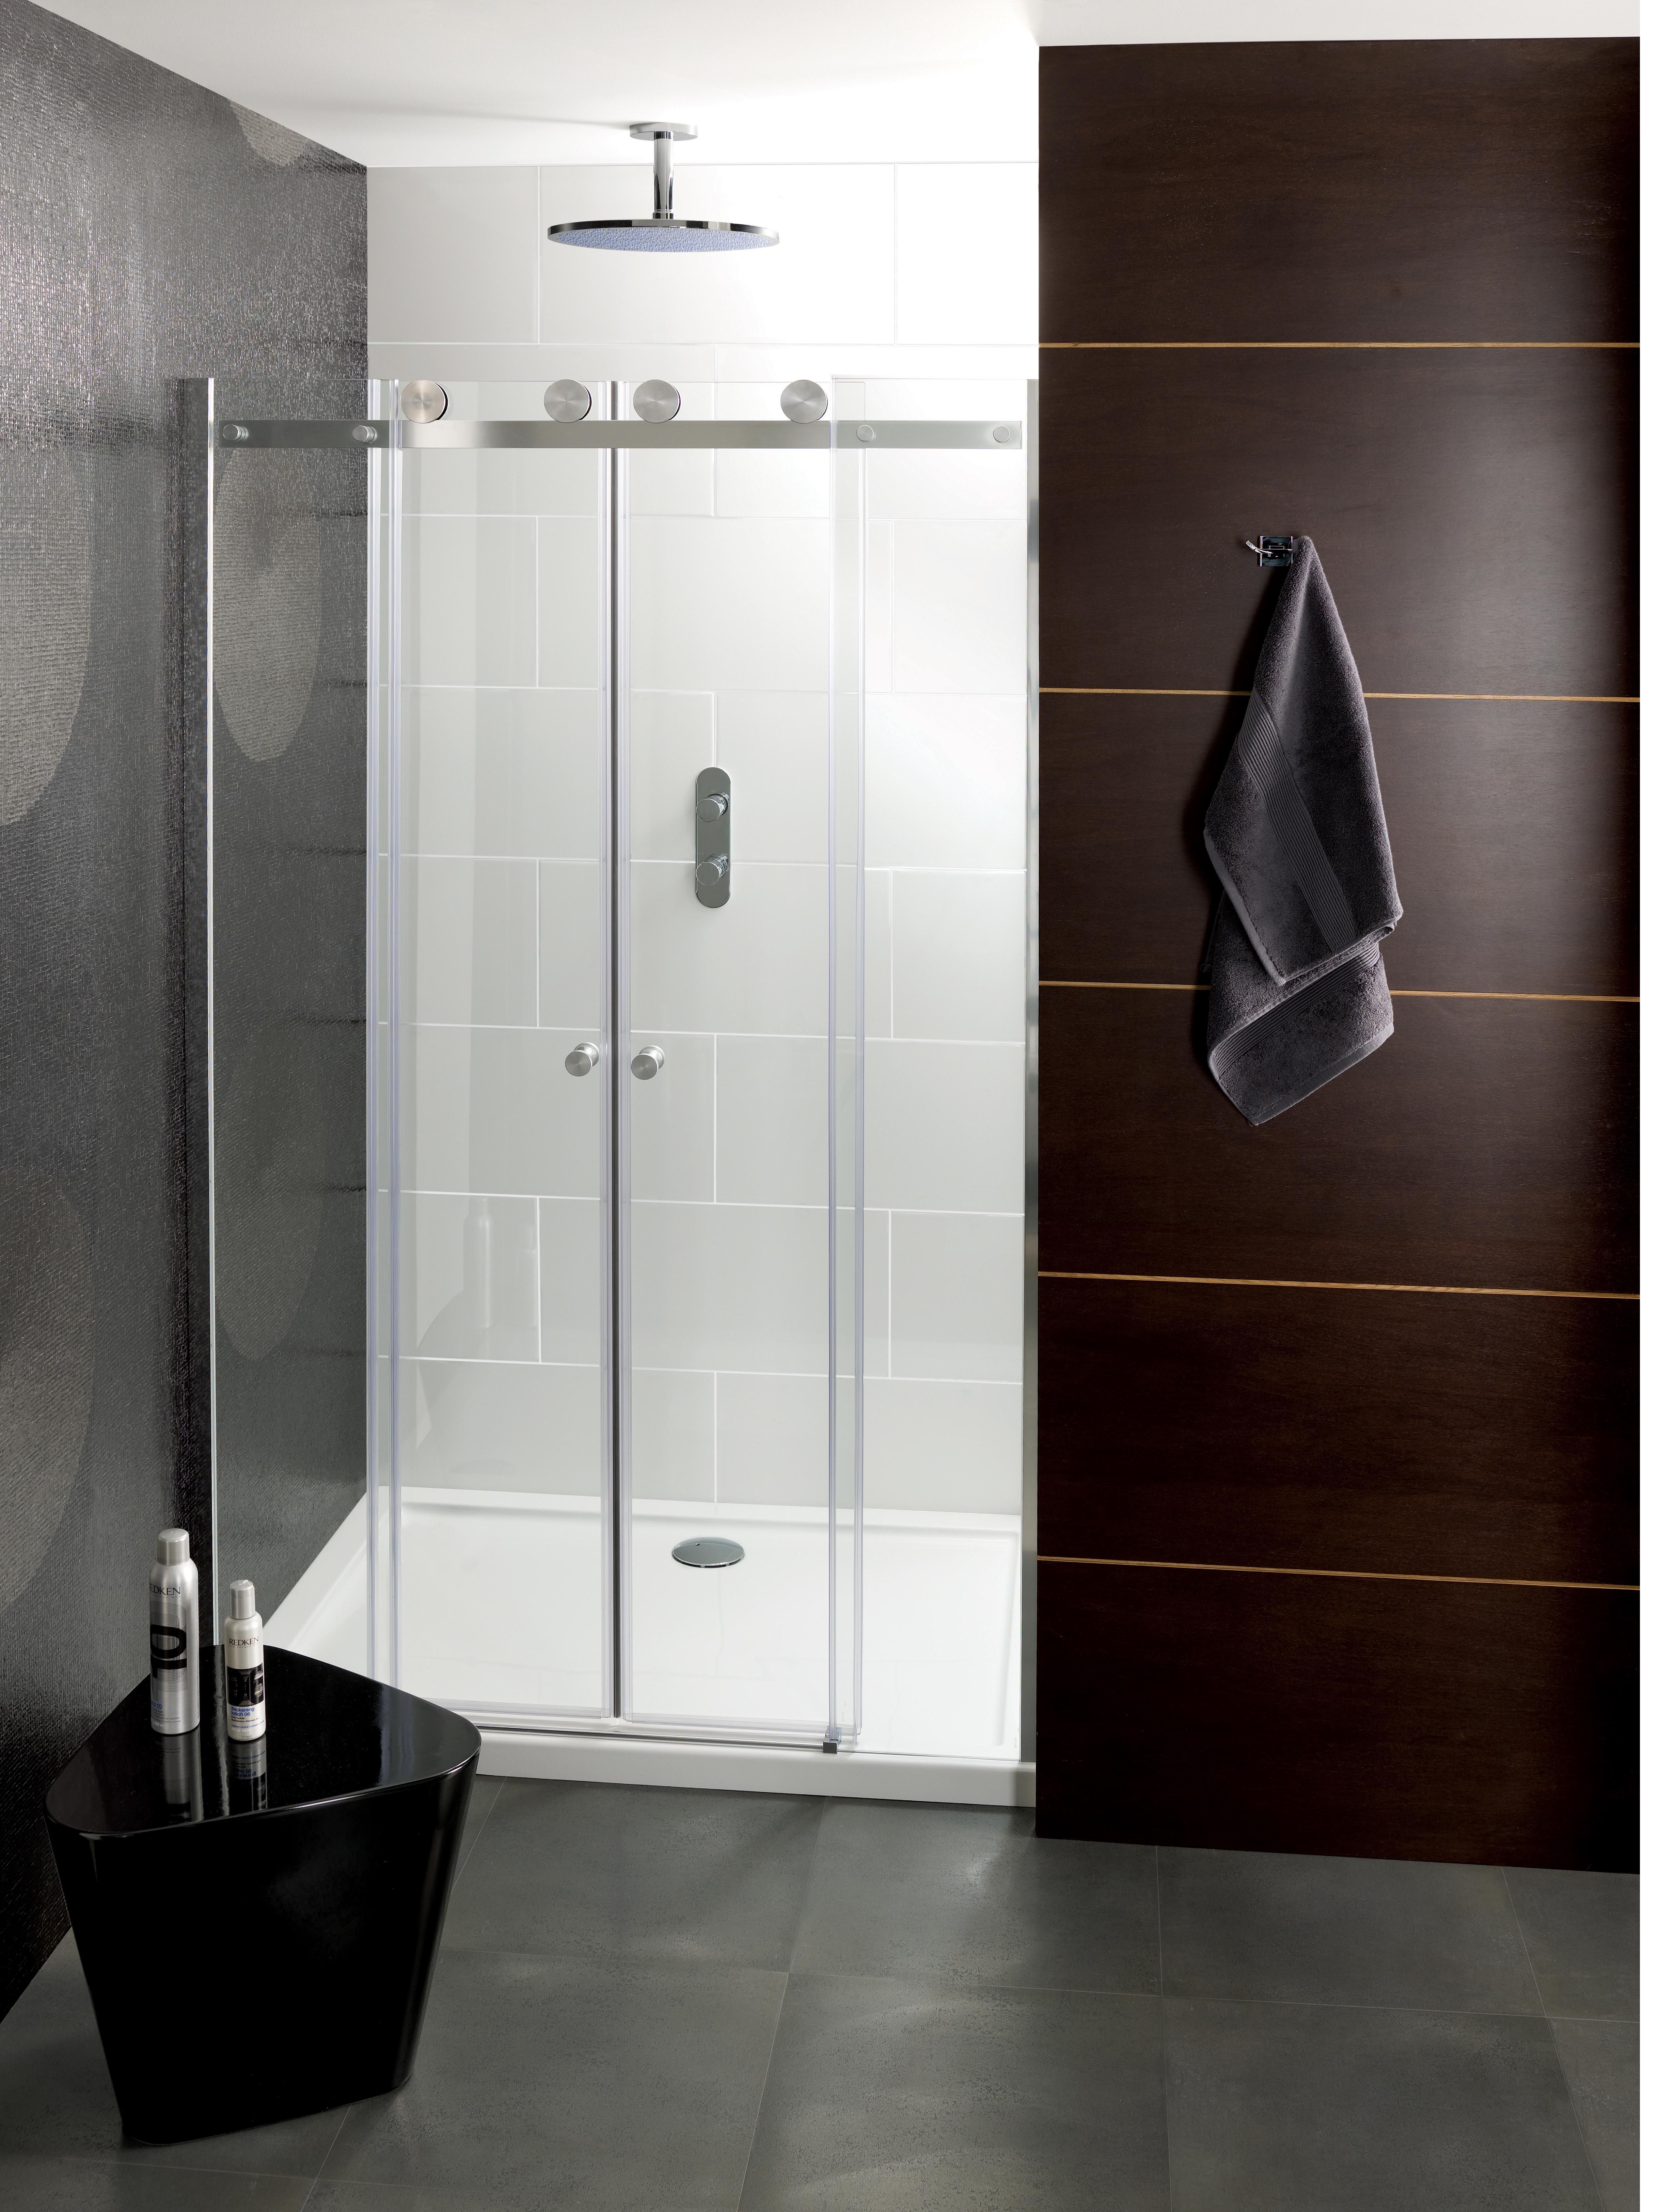 Central Double Sided Bathroom Shower Enclosure from Crosswater ...